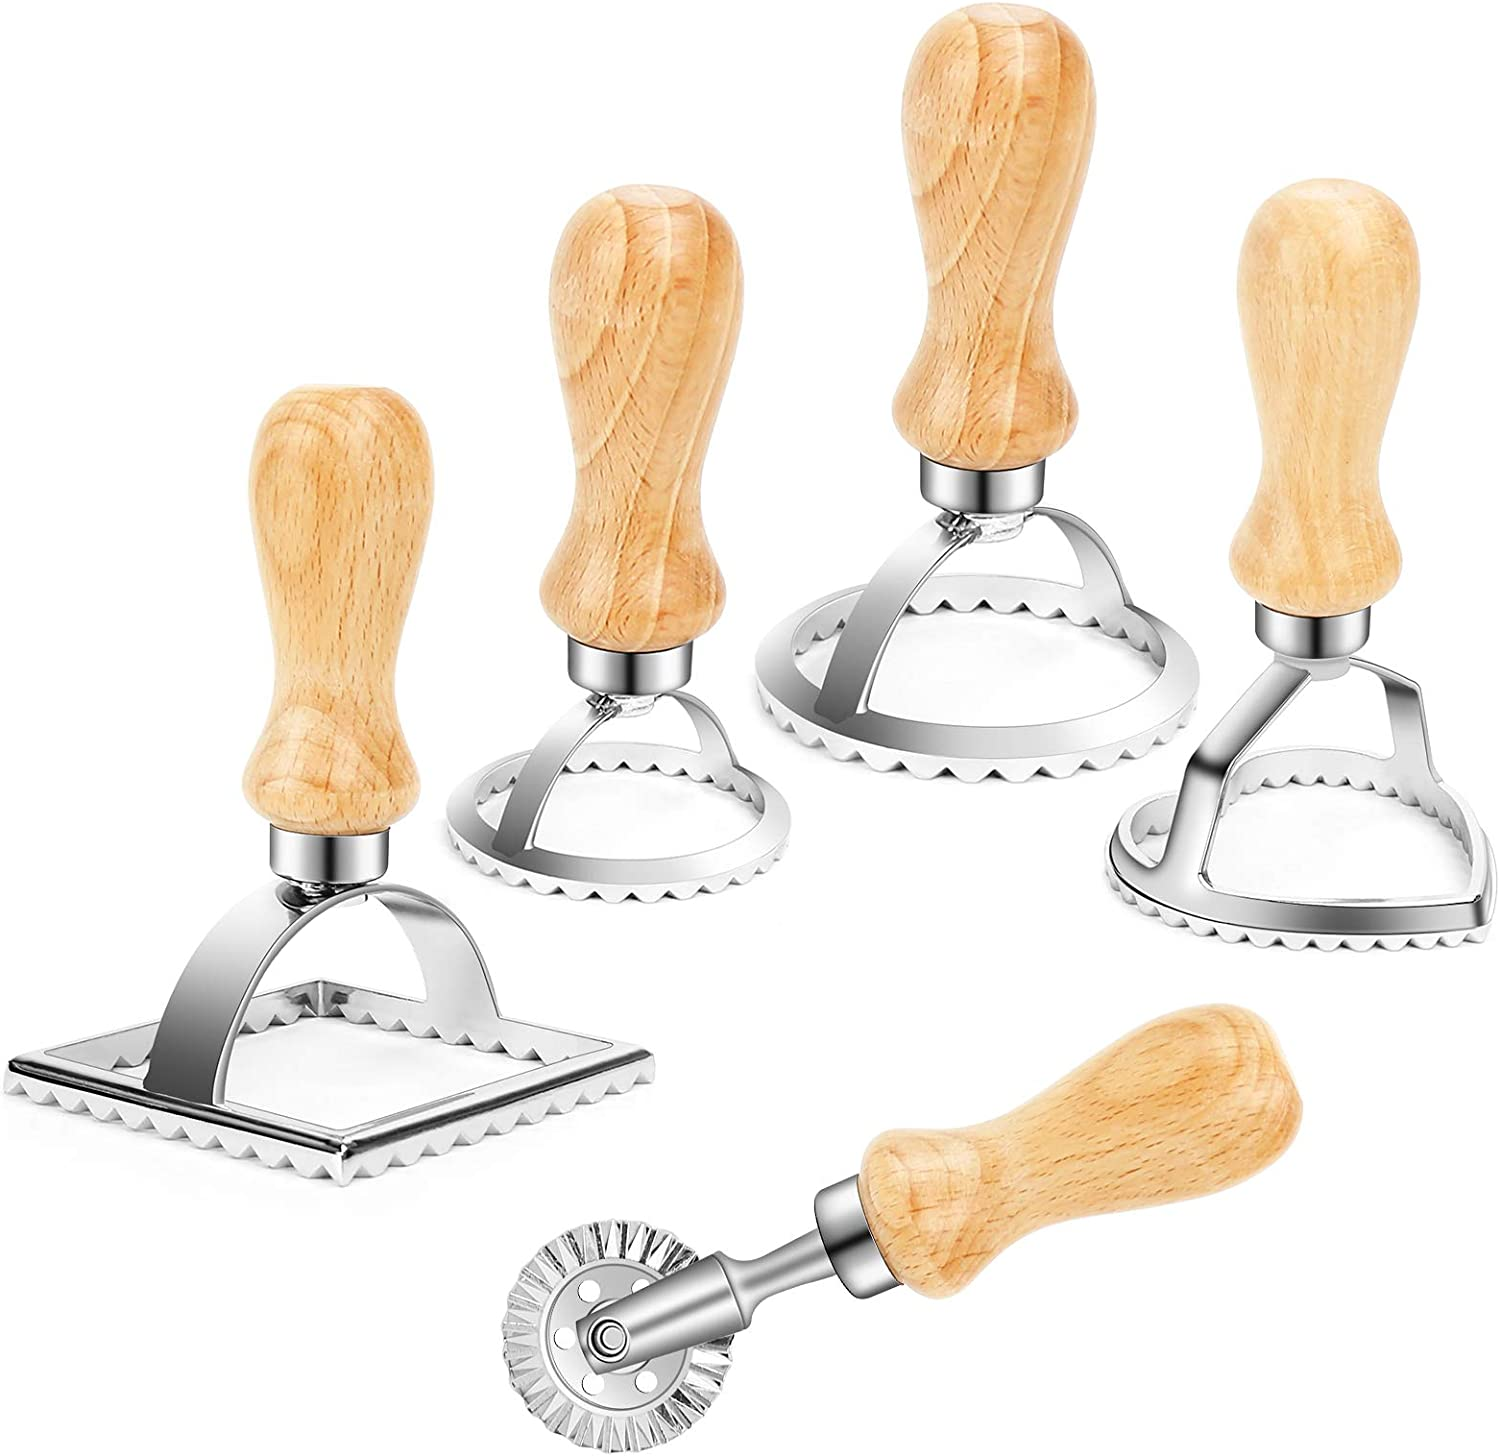 Freehawk 5-Piece Ravioli Stamp Set Ravioli Stamp Maker Cutter Pasta Roller Wheel Cutter with Wooden Handle for Ravioli Pasta Dumplings Dough Cutter